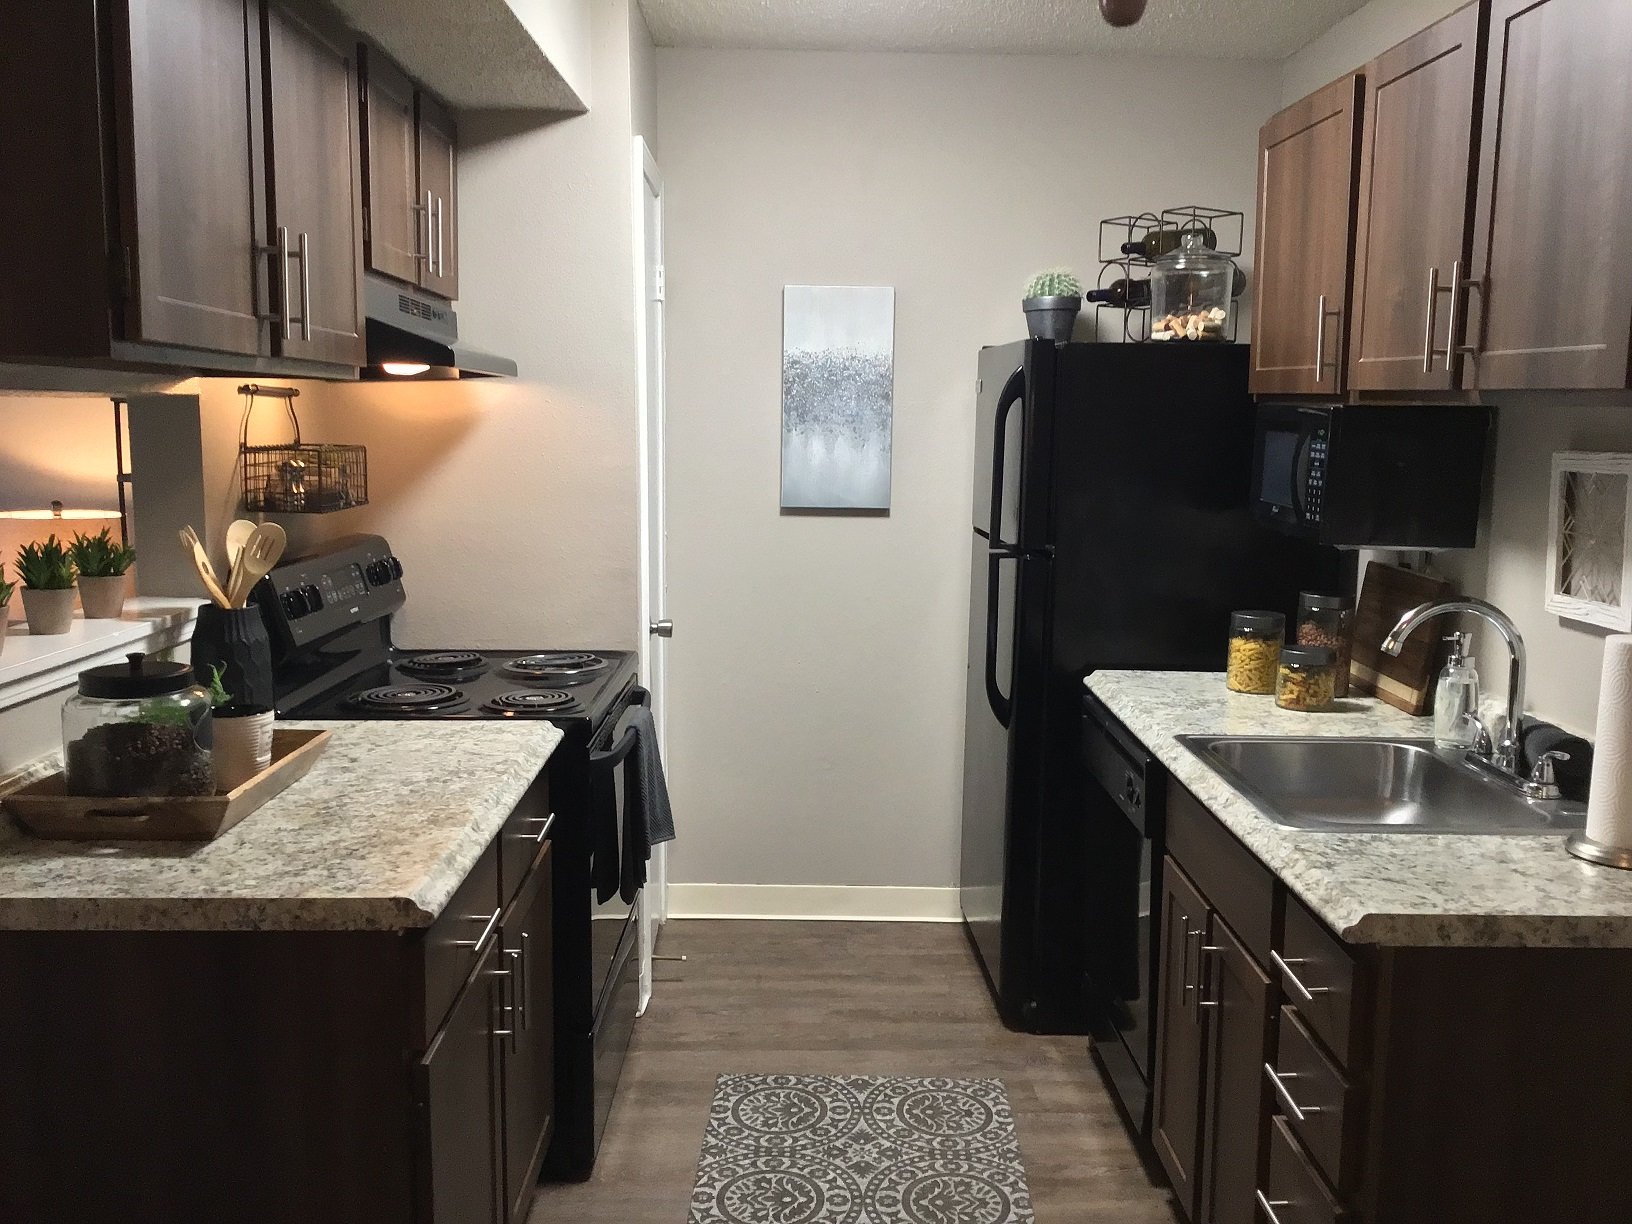 Kitchen at Rustic Woods Apartments in Tulsa, Oklahoma